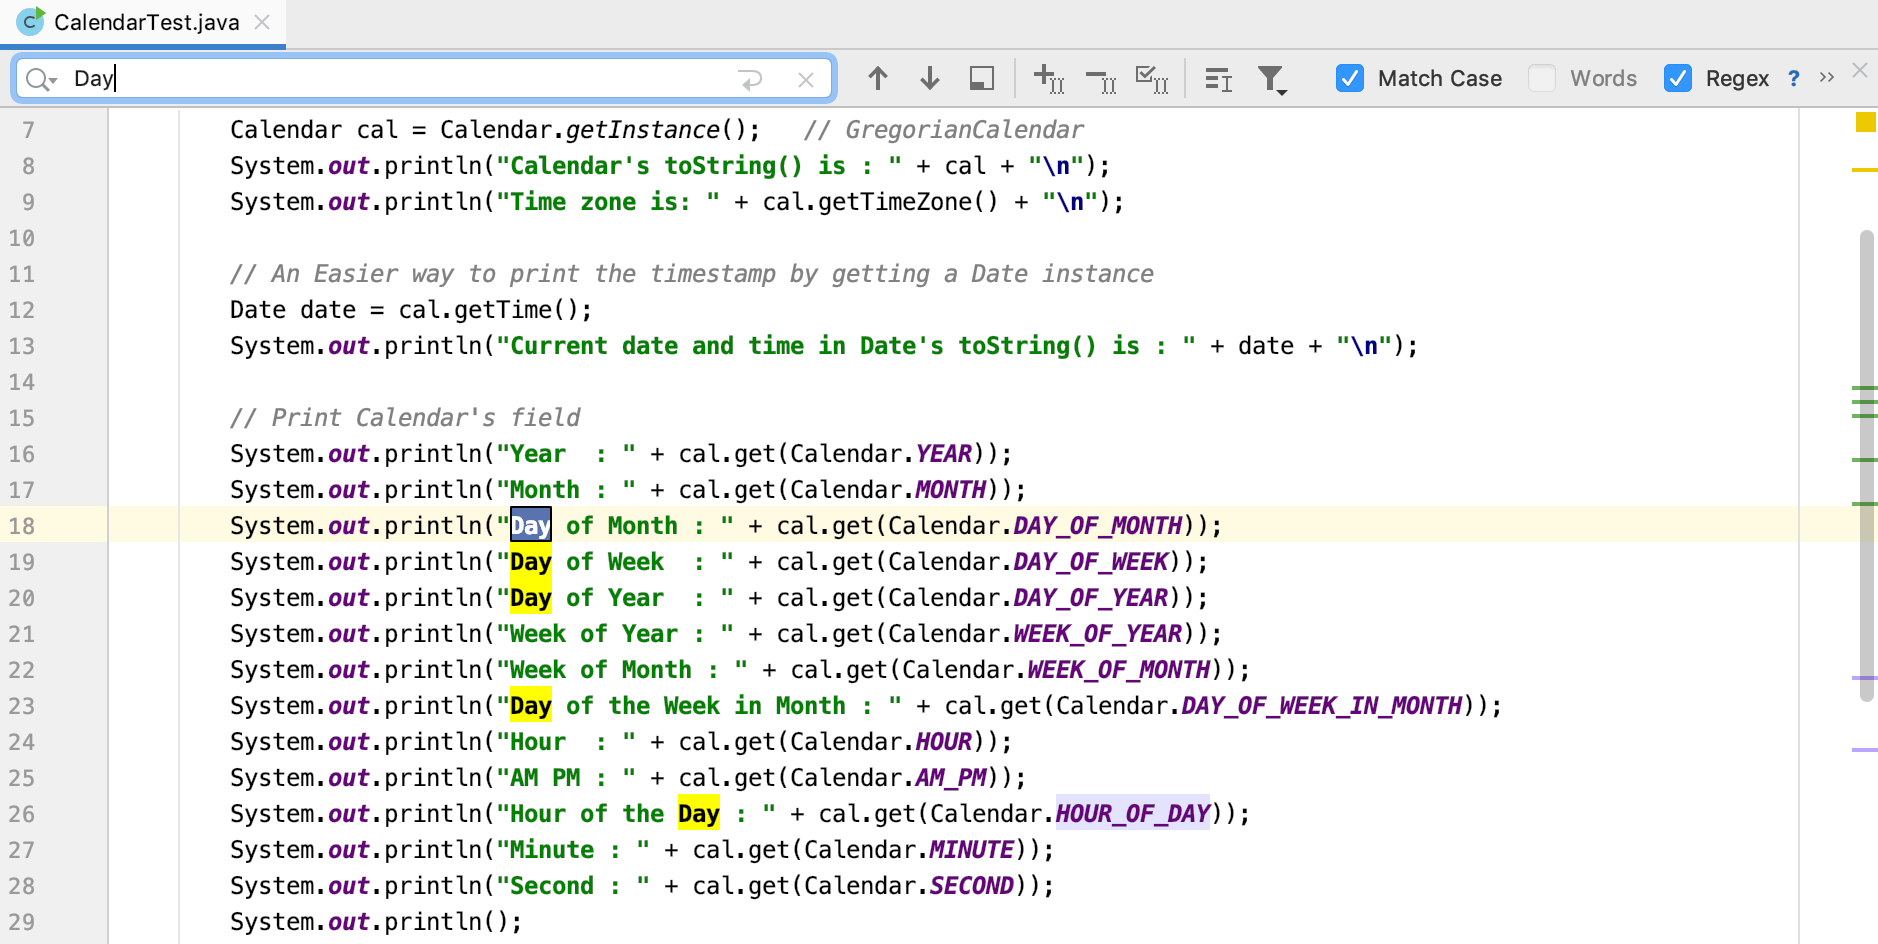 Java开发工具IntelliJ IDEA使用源代码系列教程(四):在文件中搜索目标